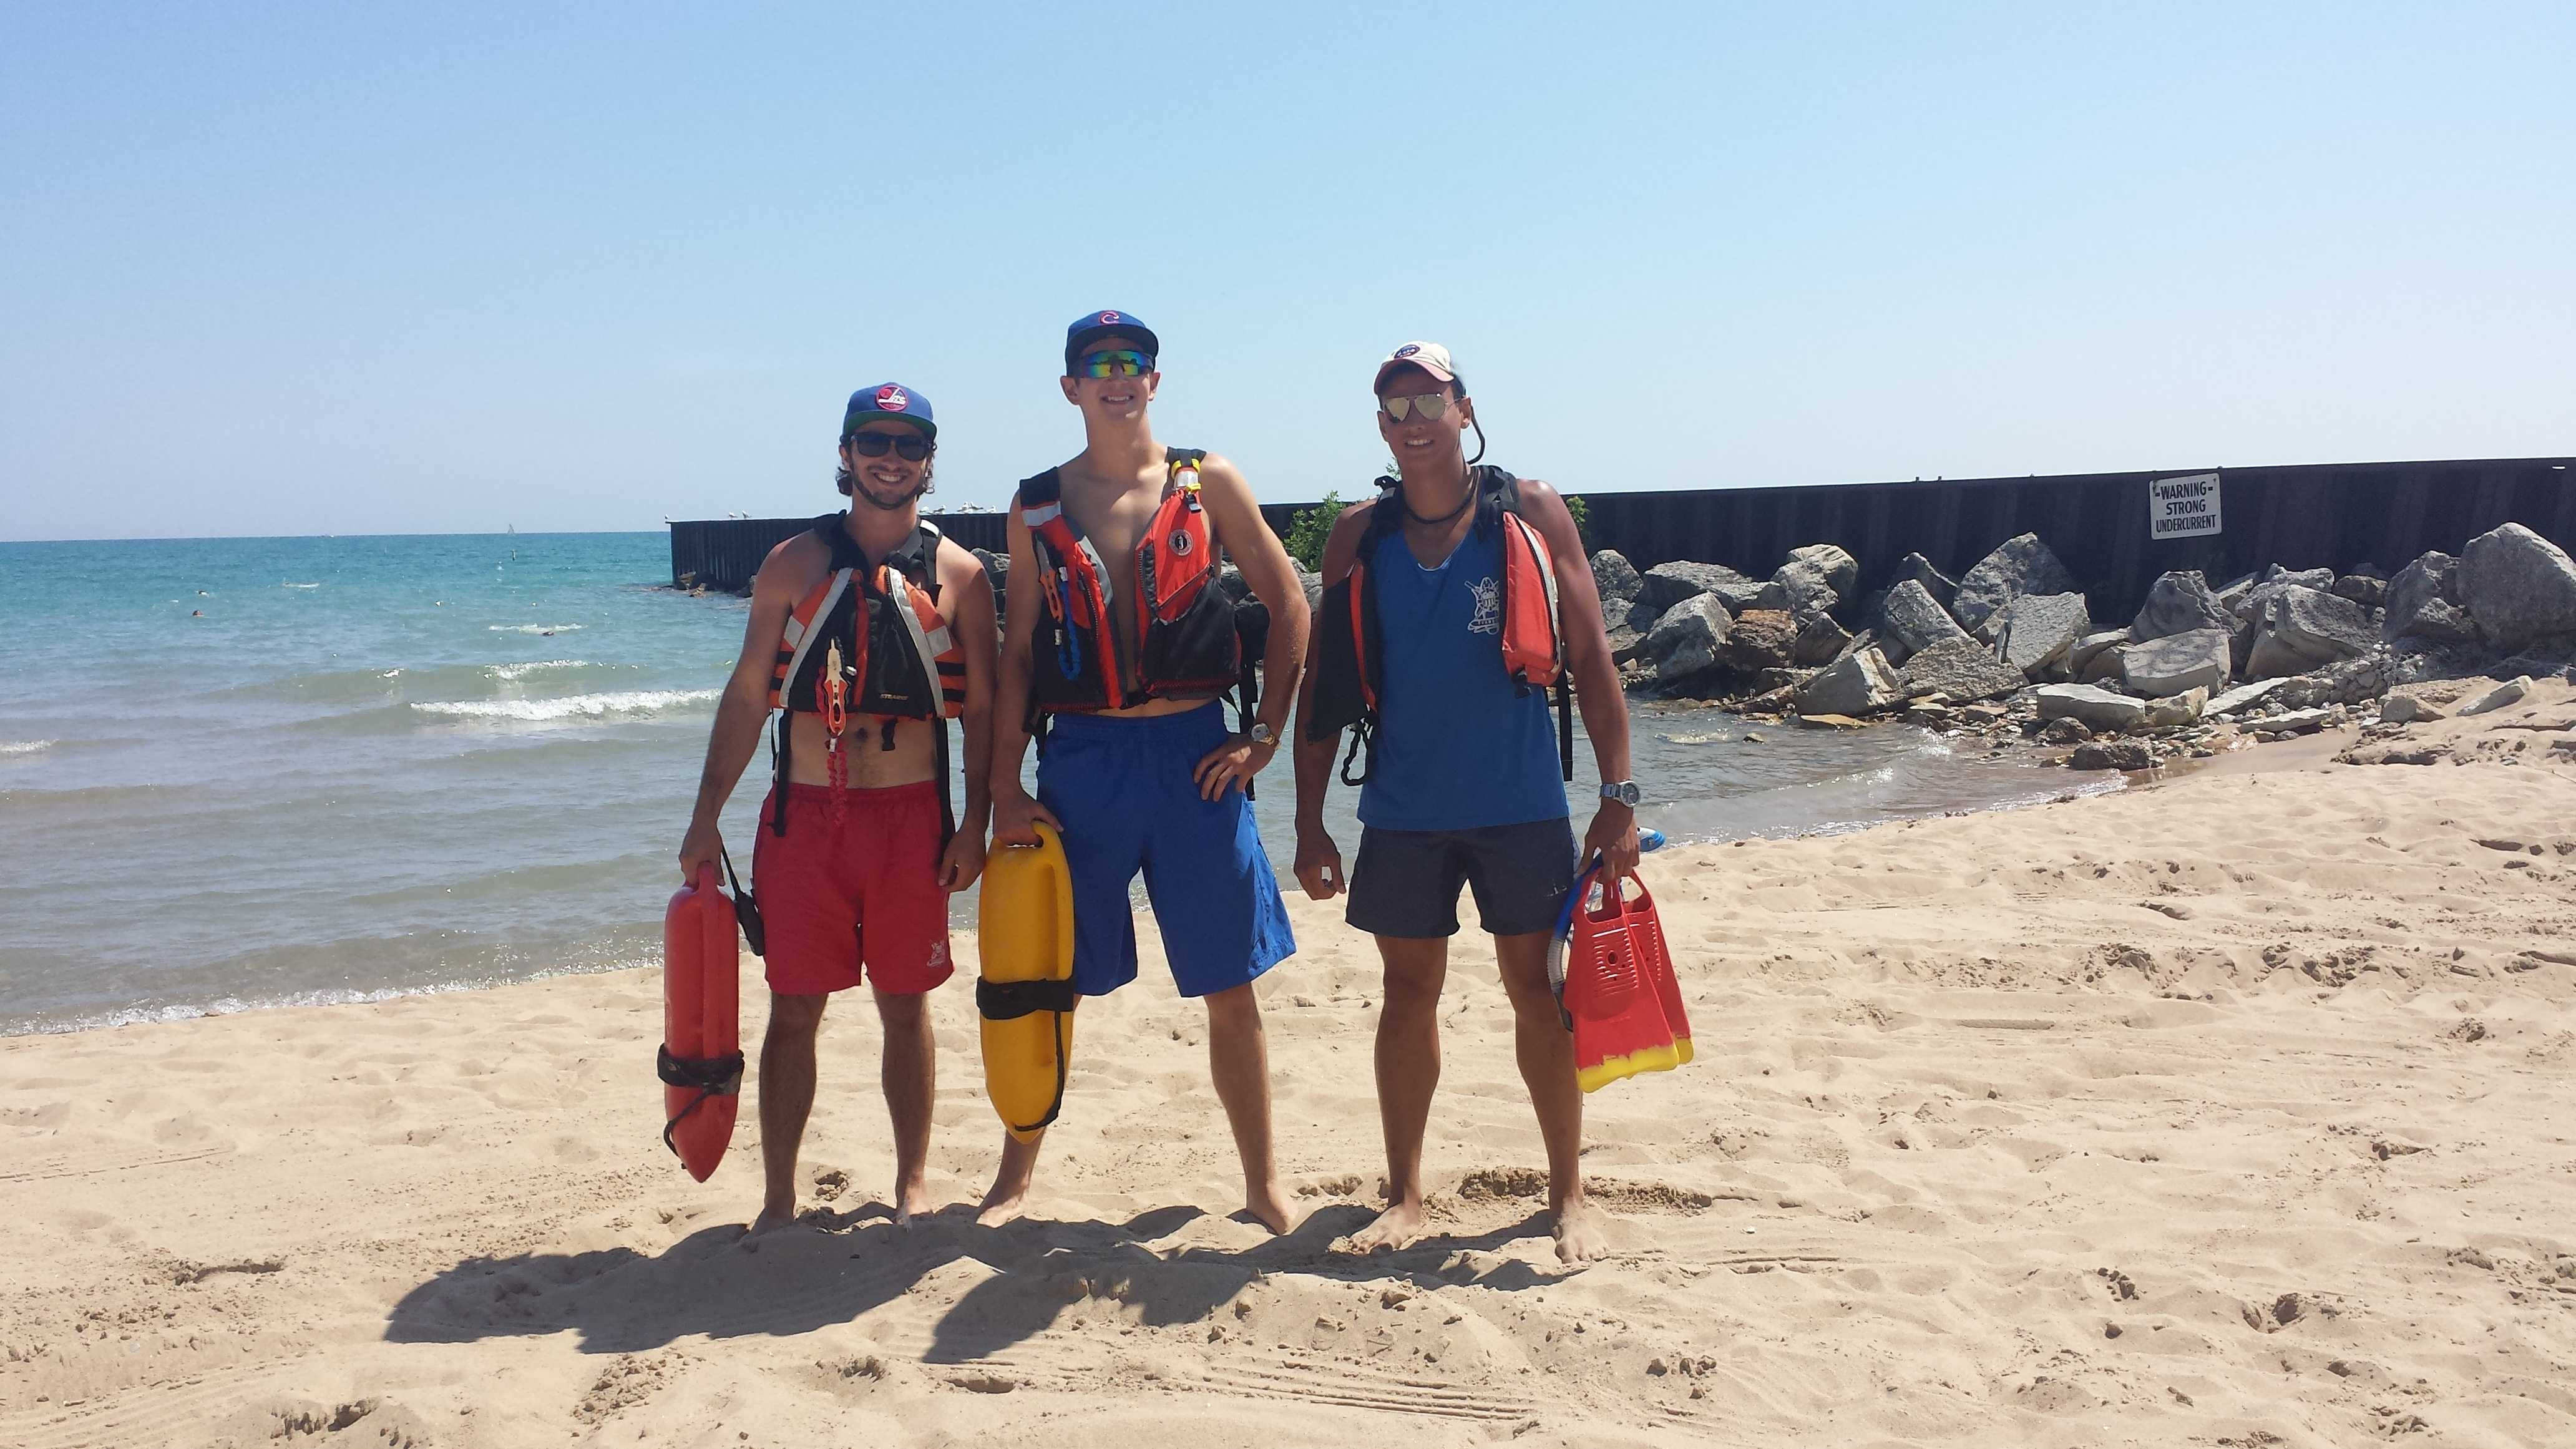 Evanston lifeguards David Altman, Jack Killheffer and Tudor Byas were honored by Mayor Elizabeth Tisdahl at Monday's City Council meeting. The lifeguards rescued a man whose boat sank earlier this month about a mile and a half off the coast of the Northwestern campus.